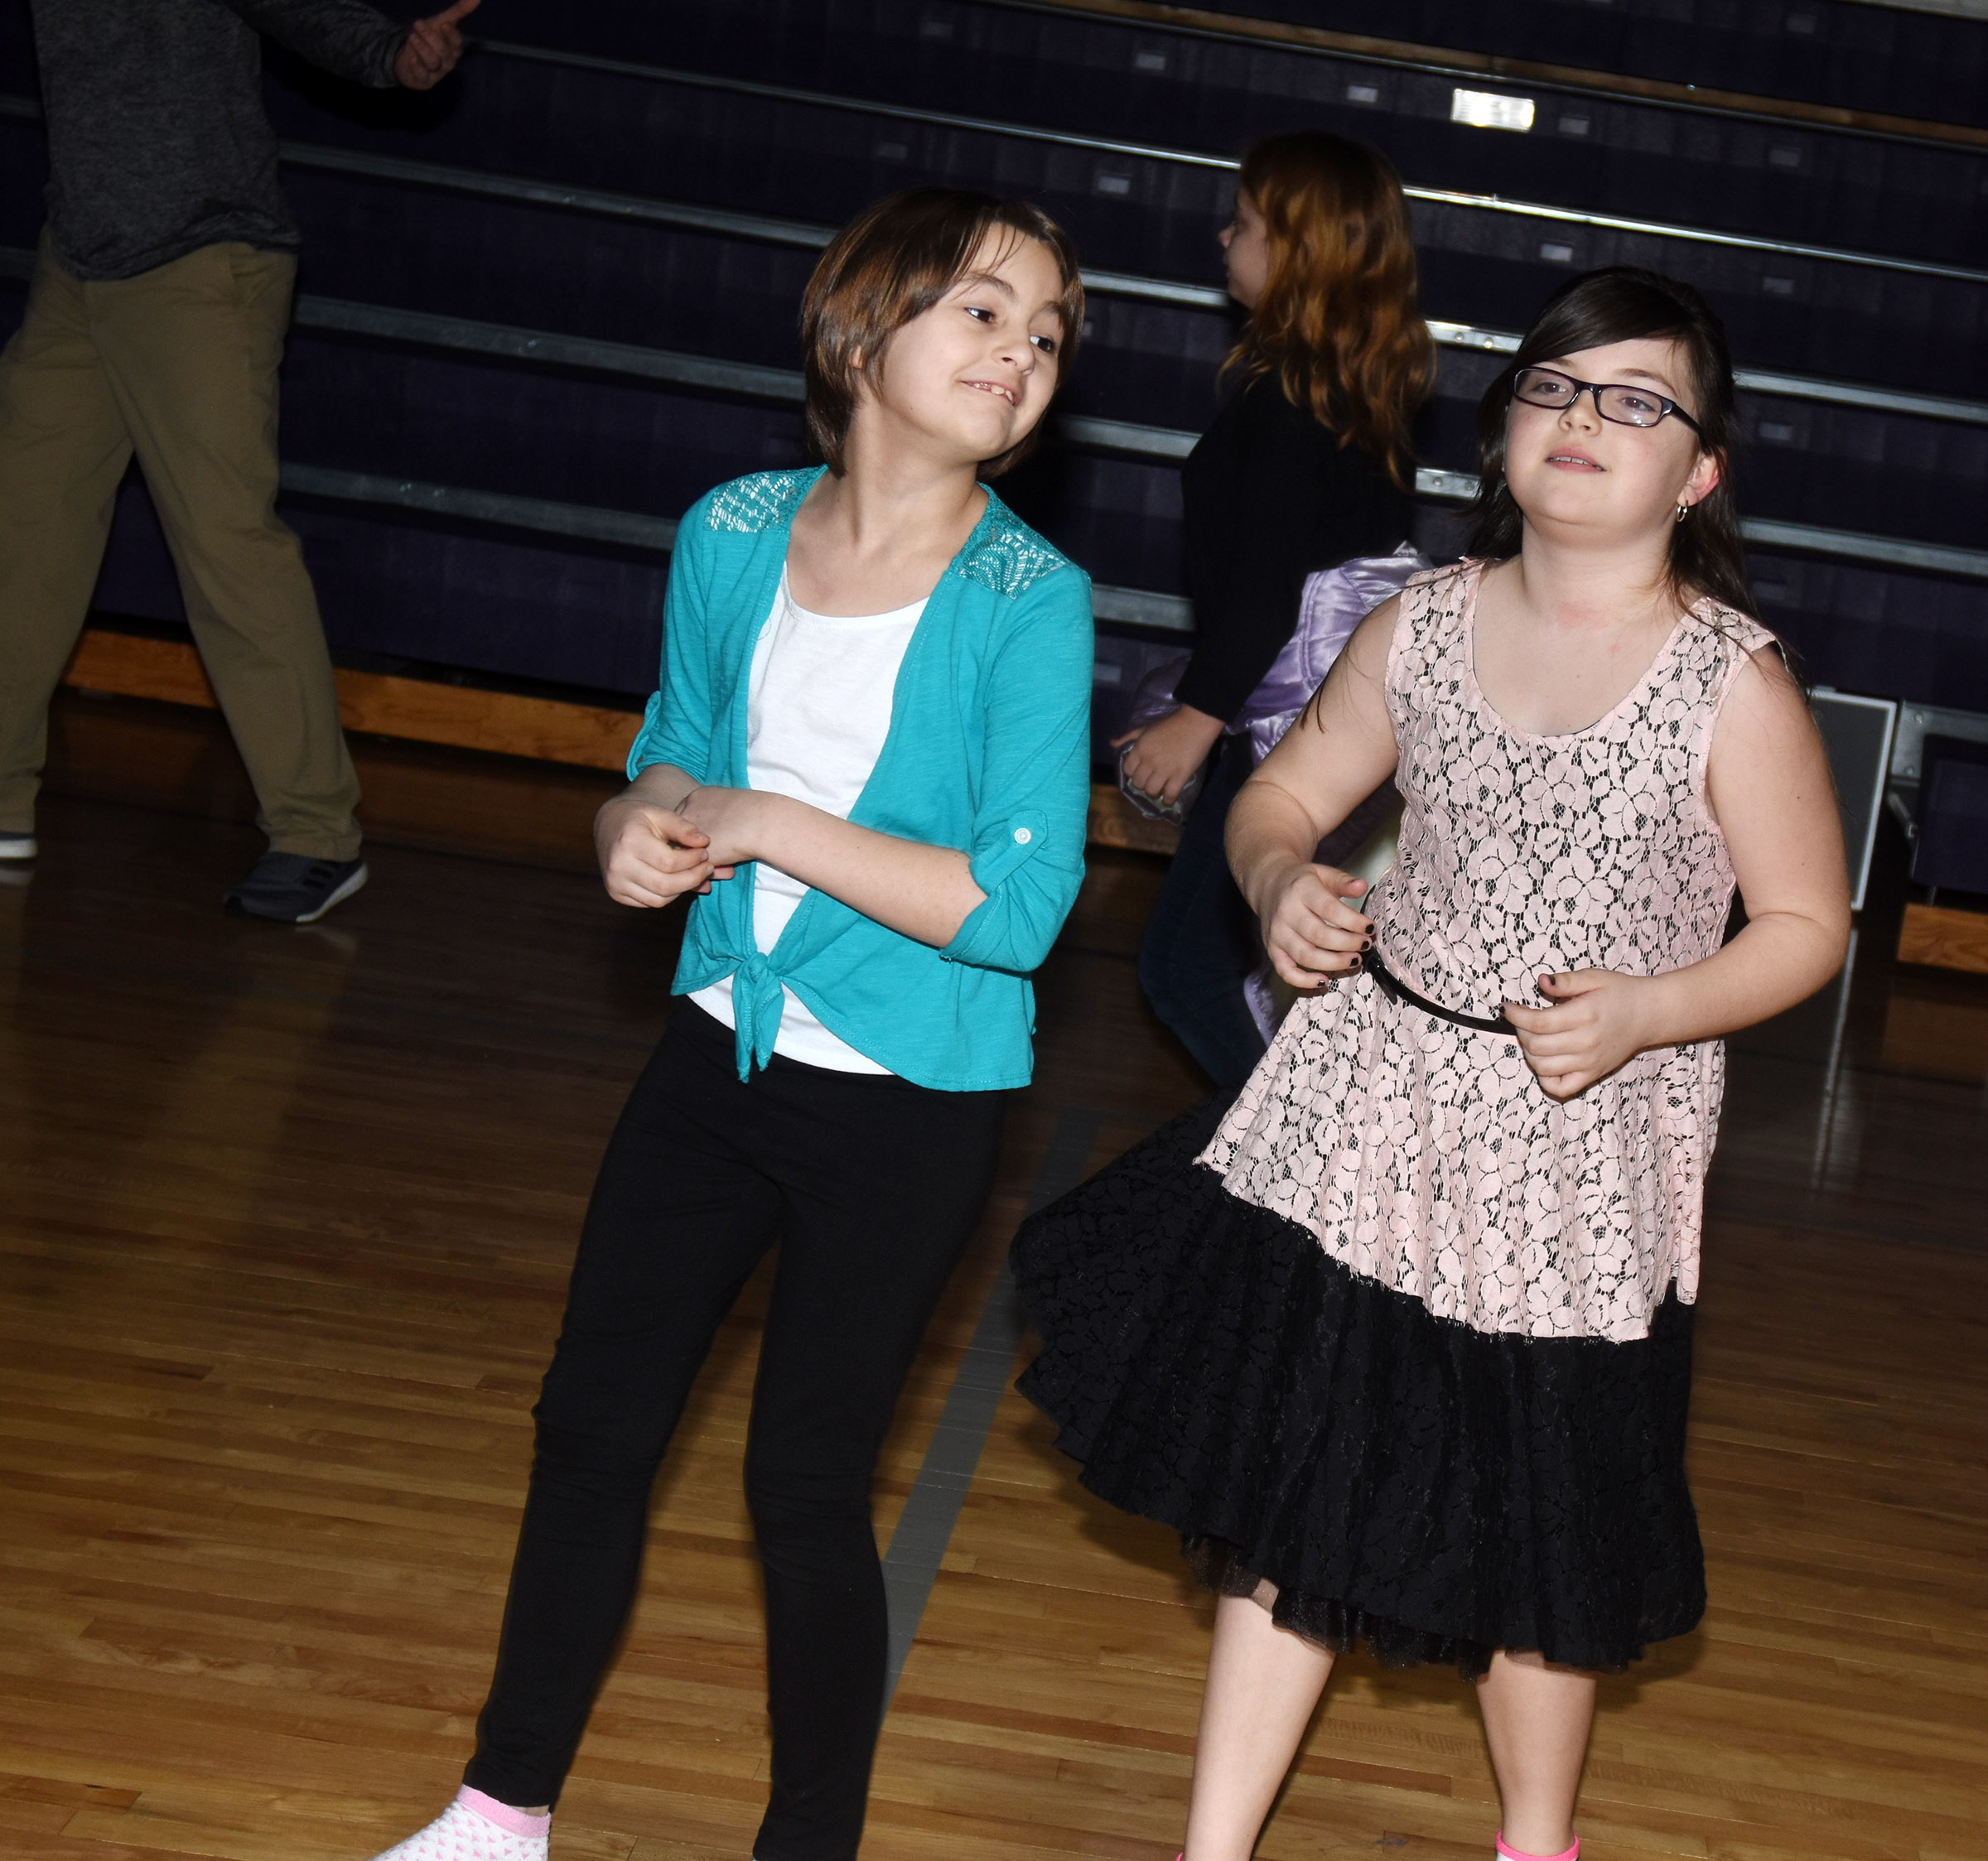 CES fourth-graders Raeanna Jefferson, at left, and Lauren Pace have fun at the dance.